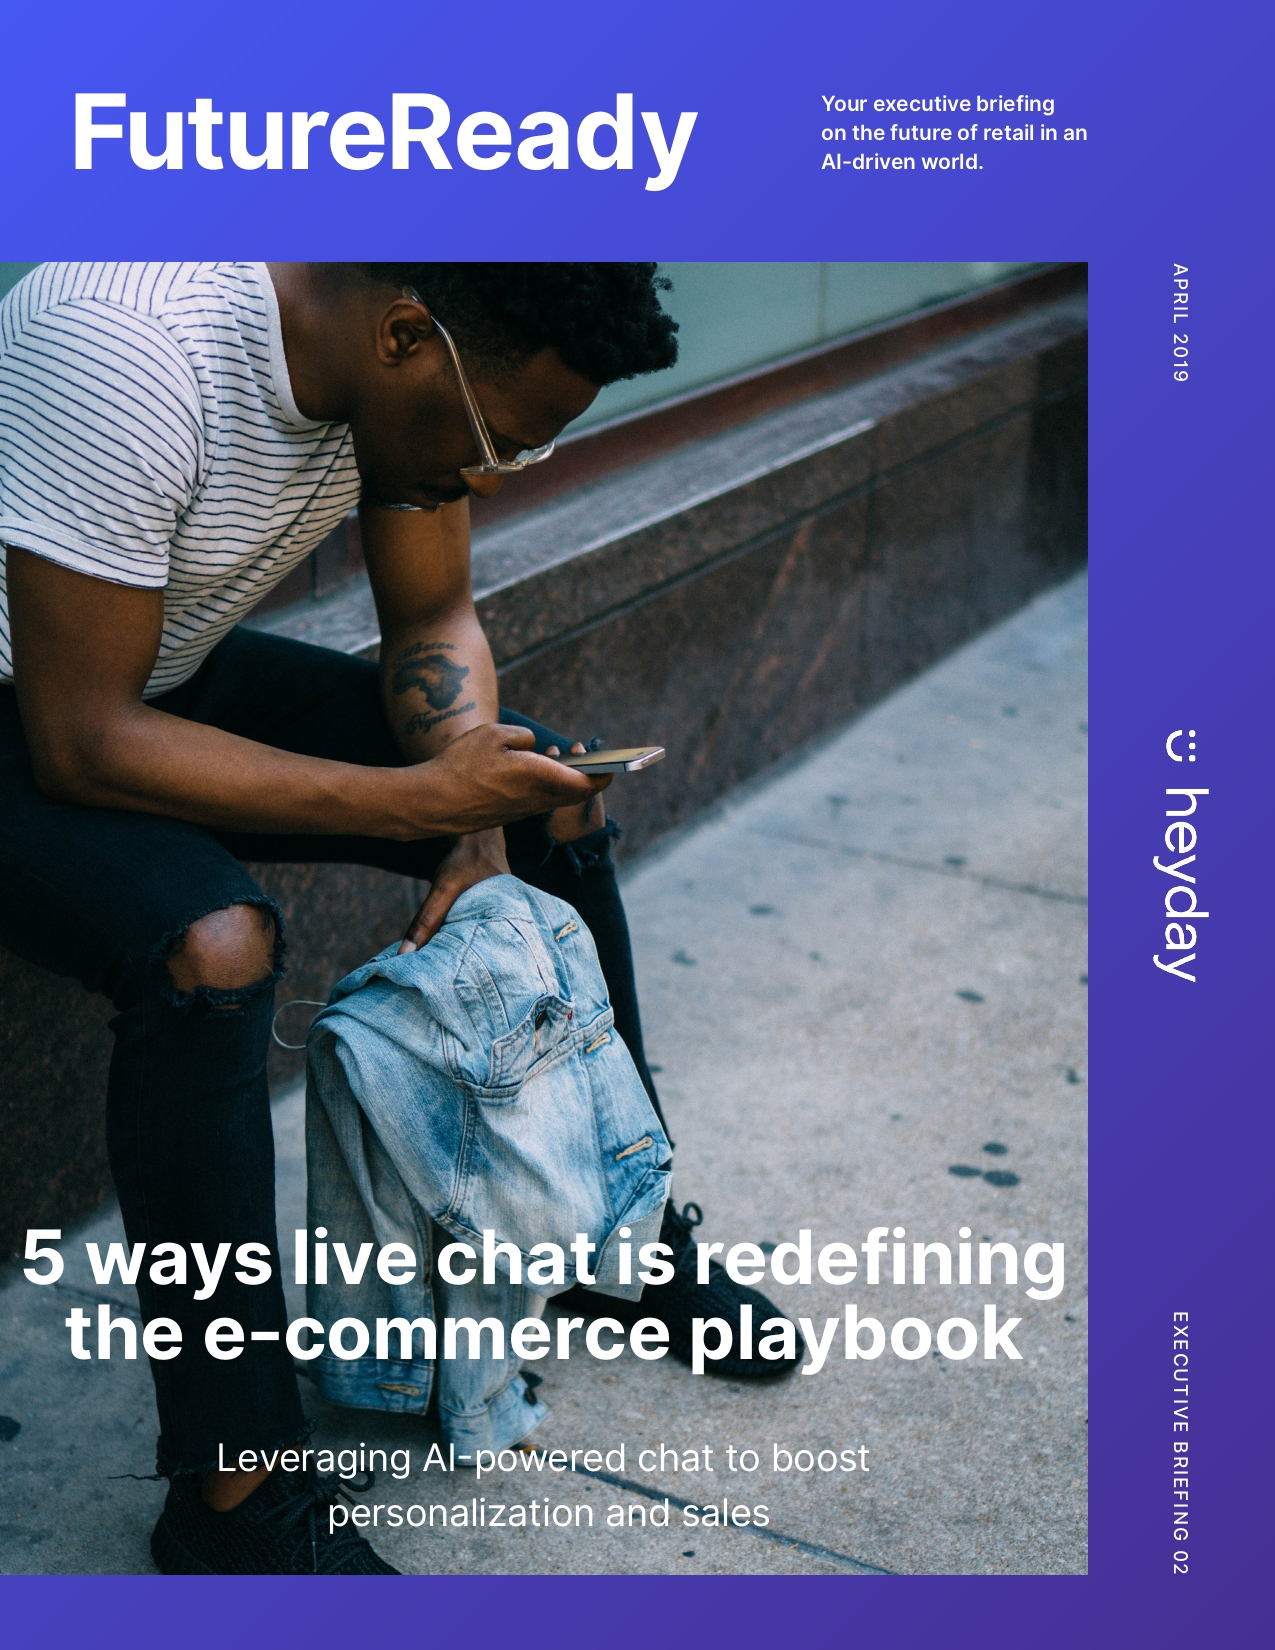 5 ways live chat is redefining e-commerce